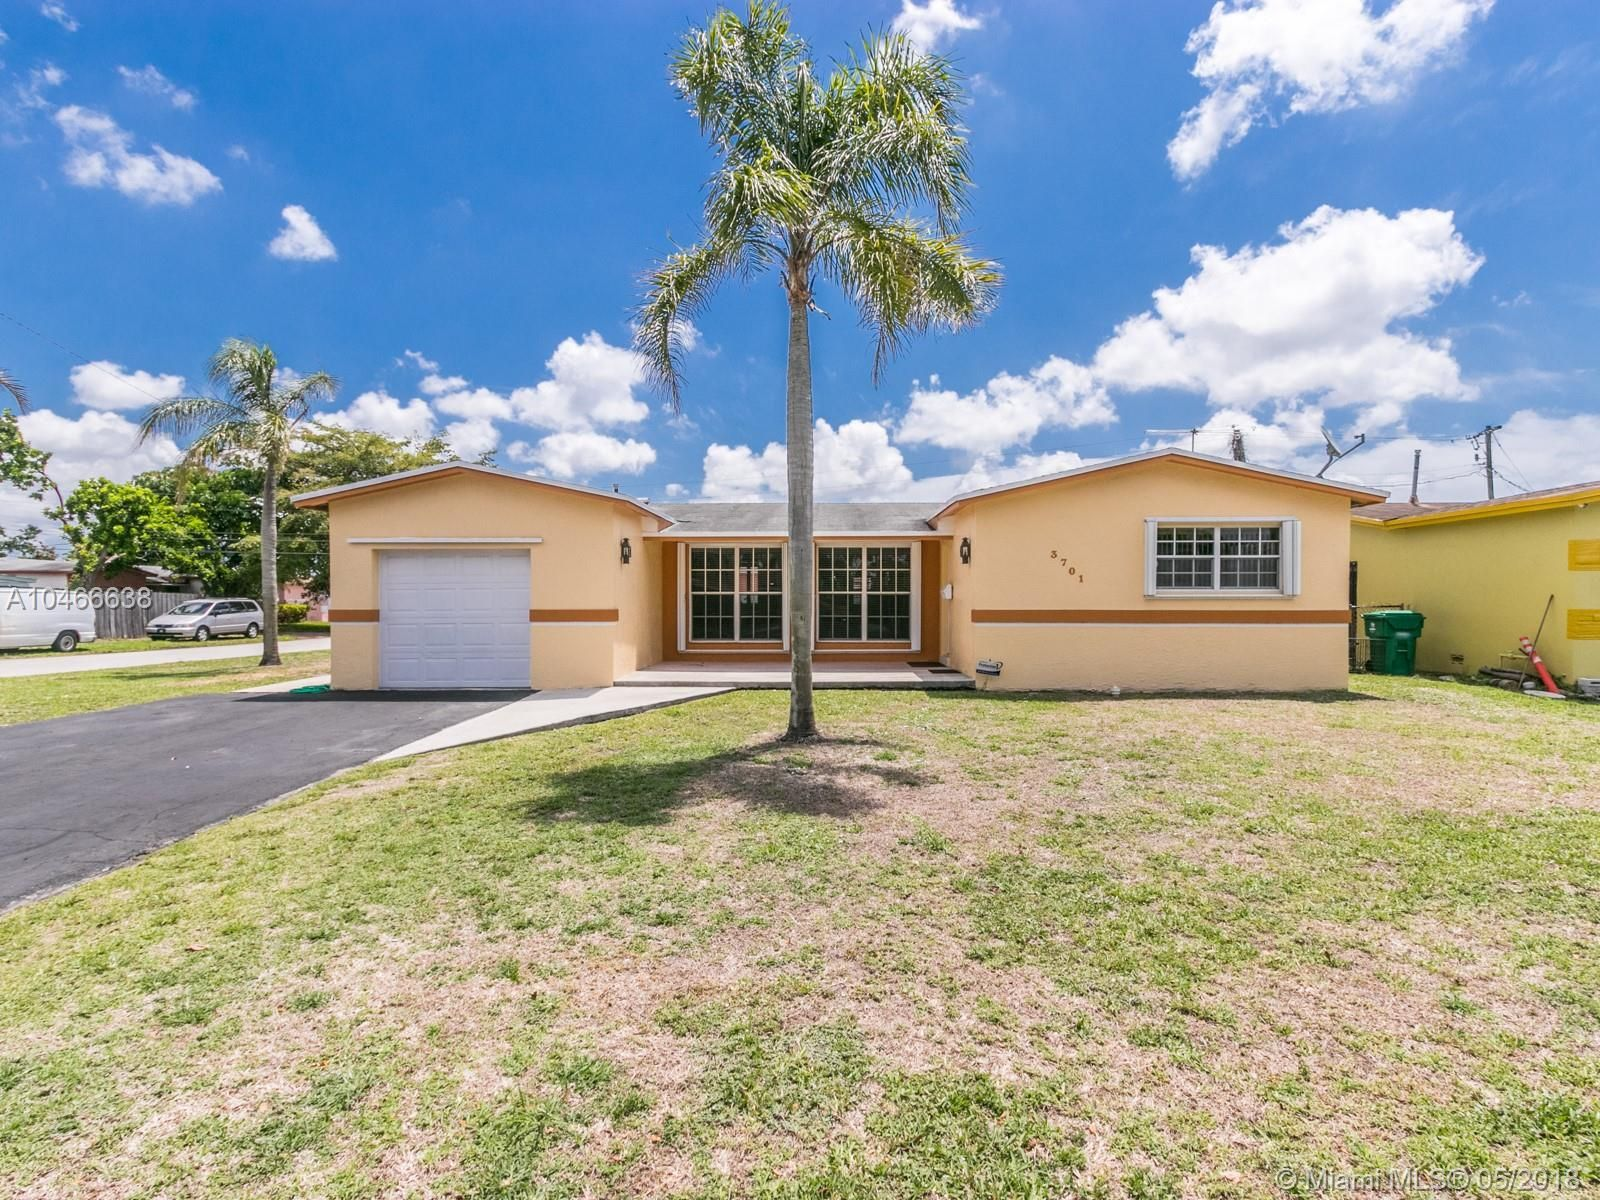 Sell My House Fast Miami Gardens